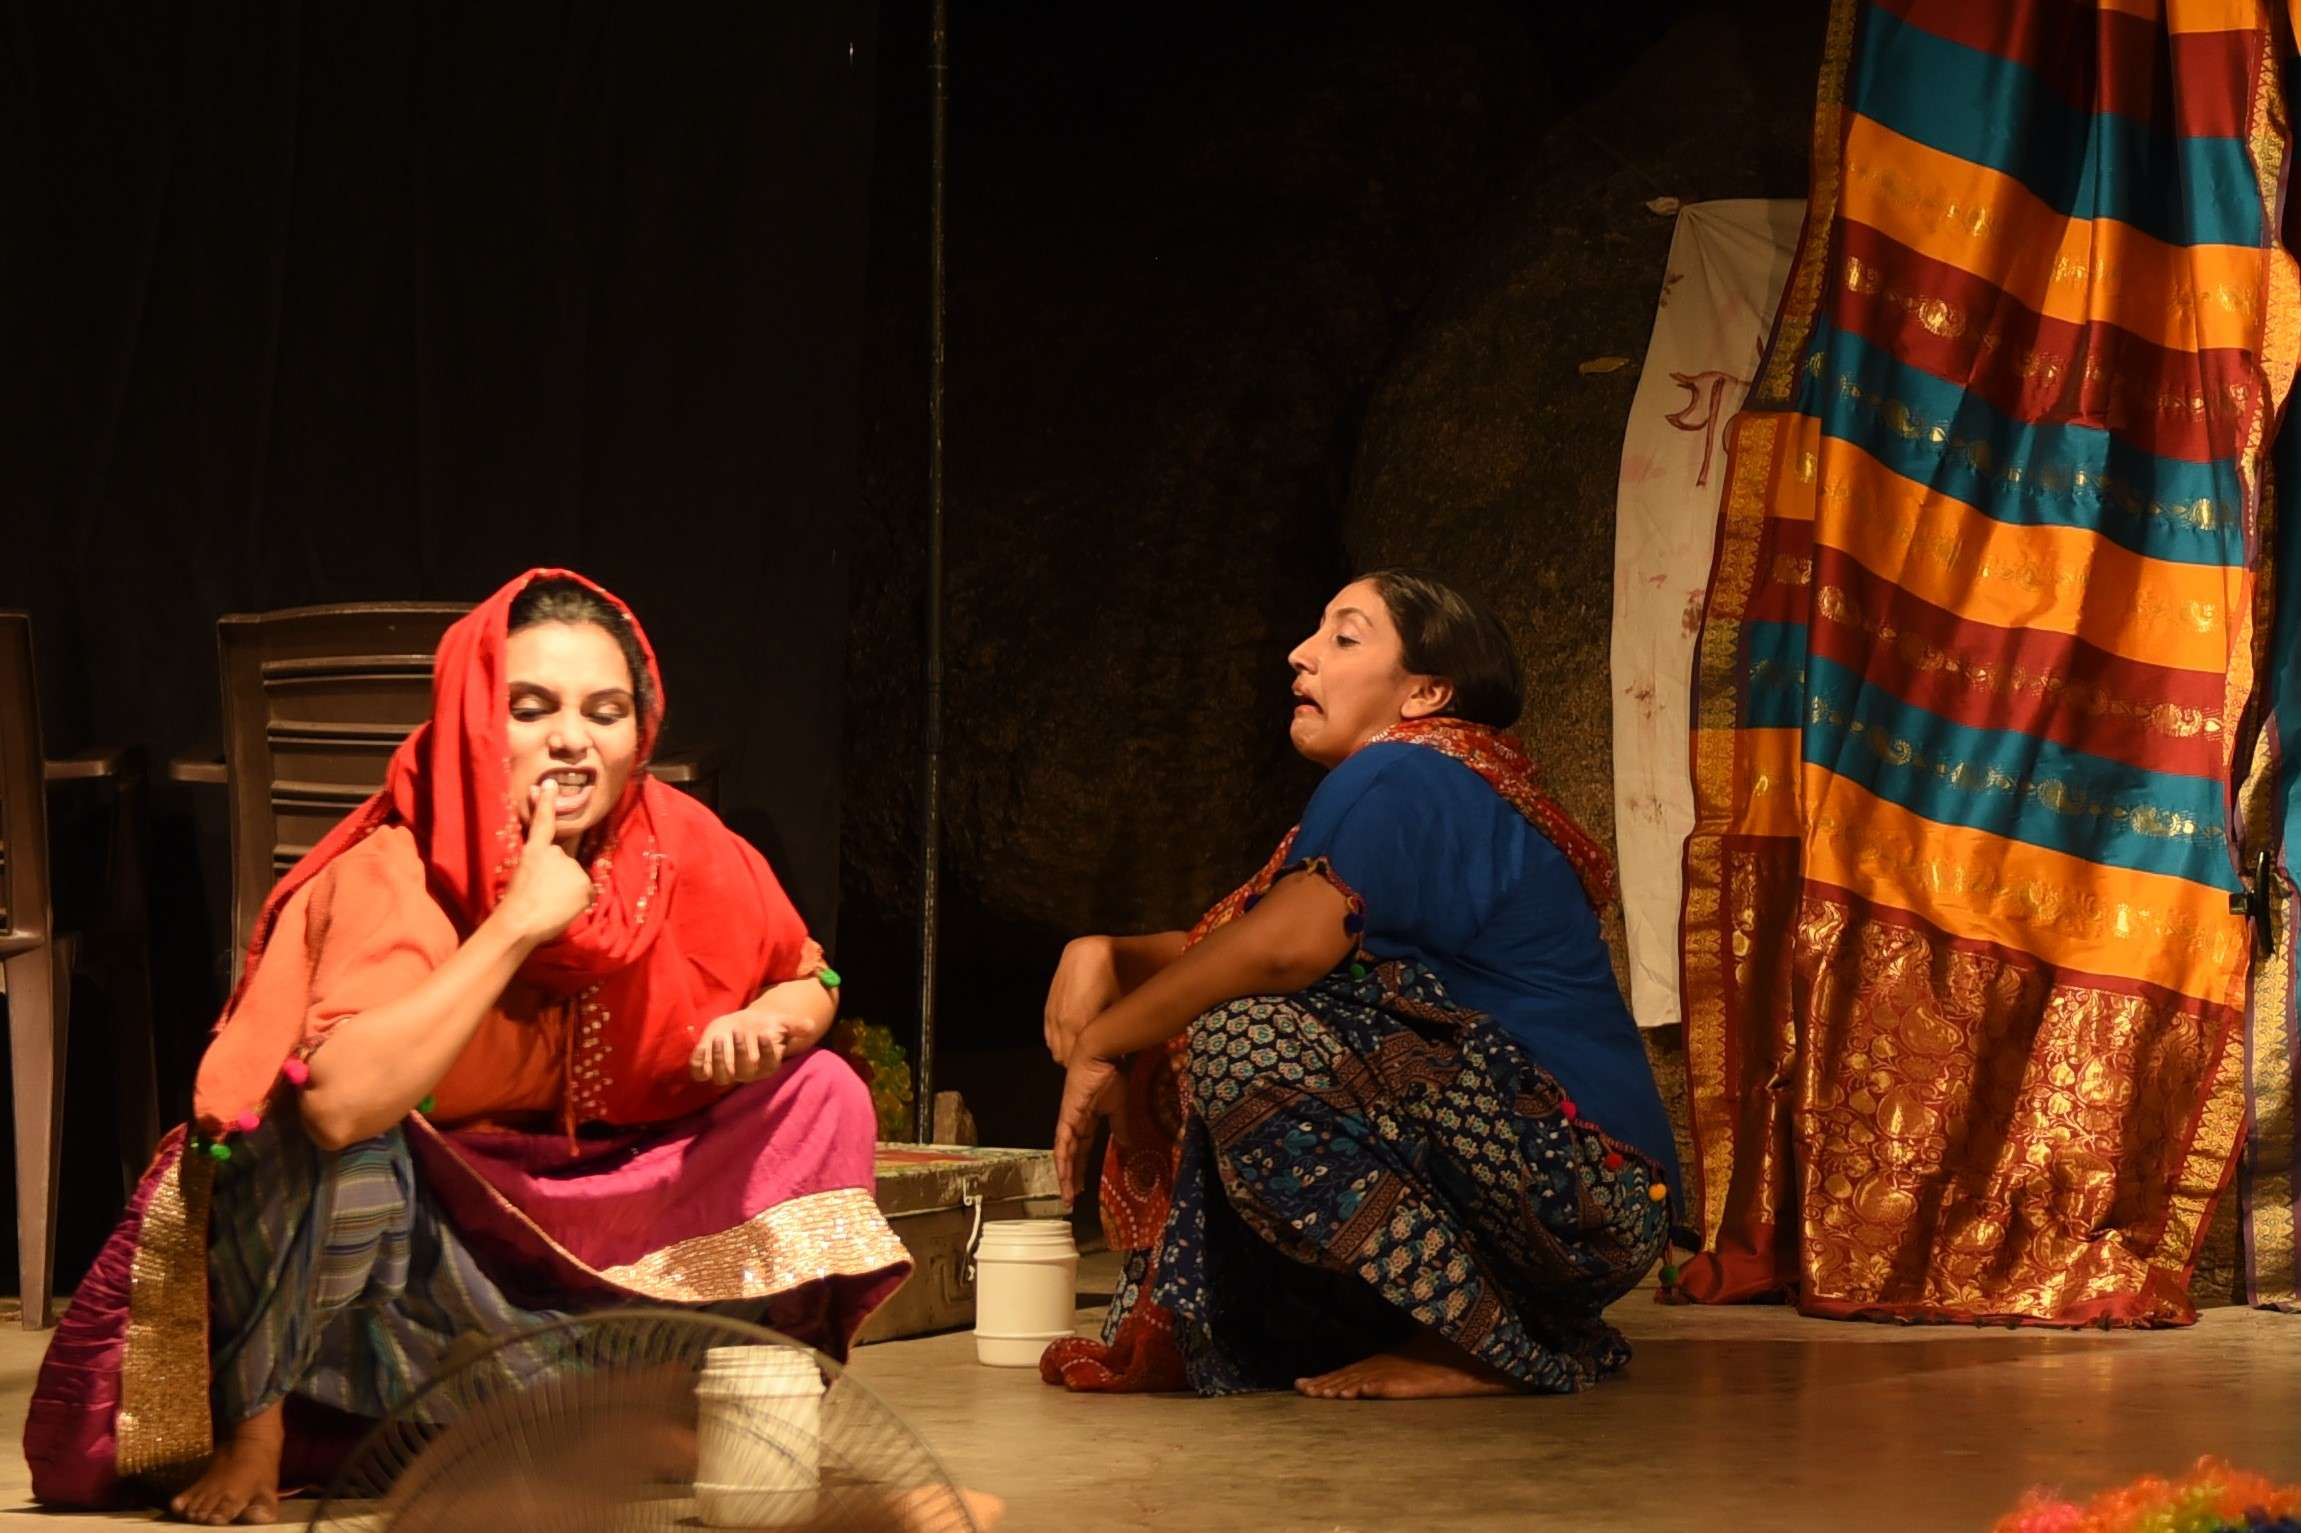 SWACH BHARATH: These theatre artists ask Hyderabad, Kya yaha